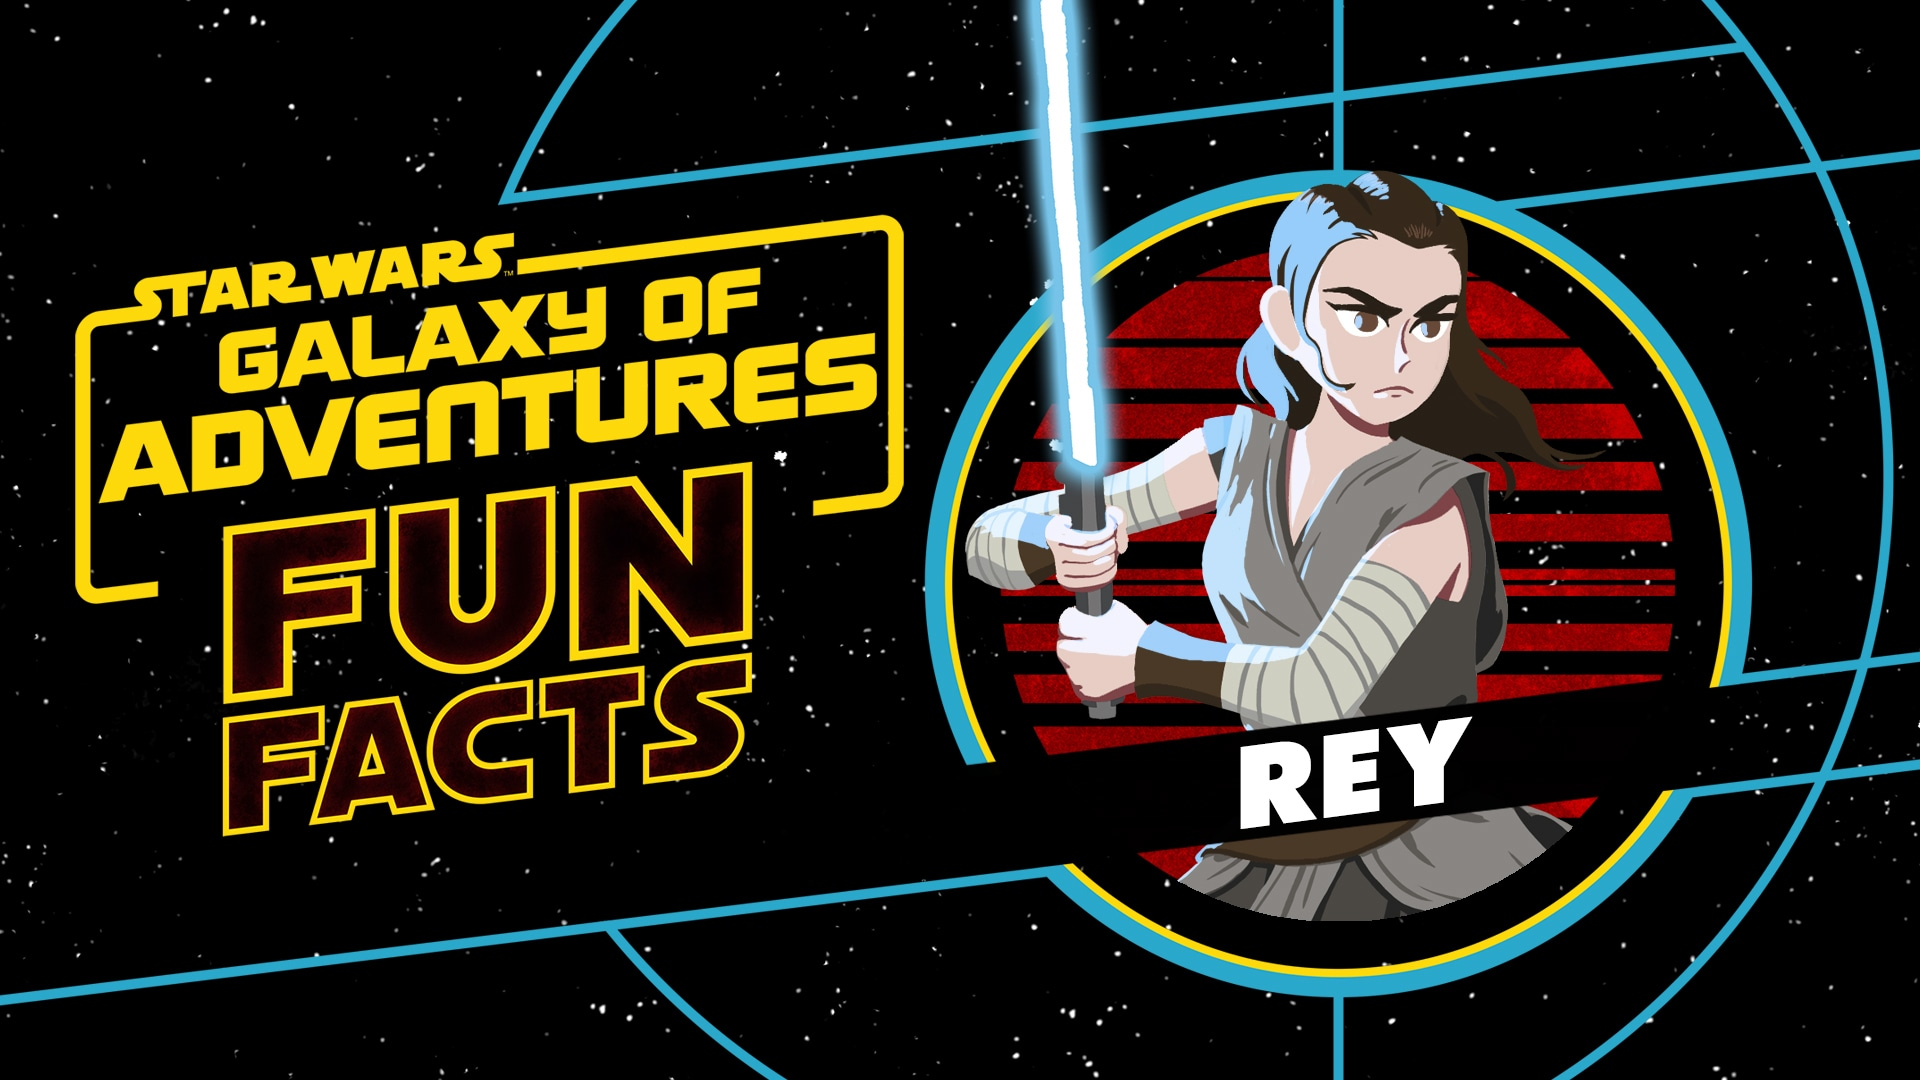 Rey | Star Wars Galaxy of Adventures Fun Facts